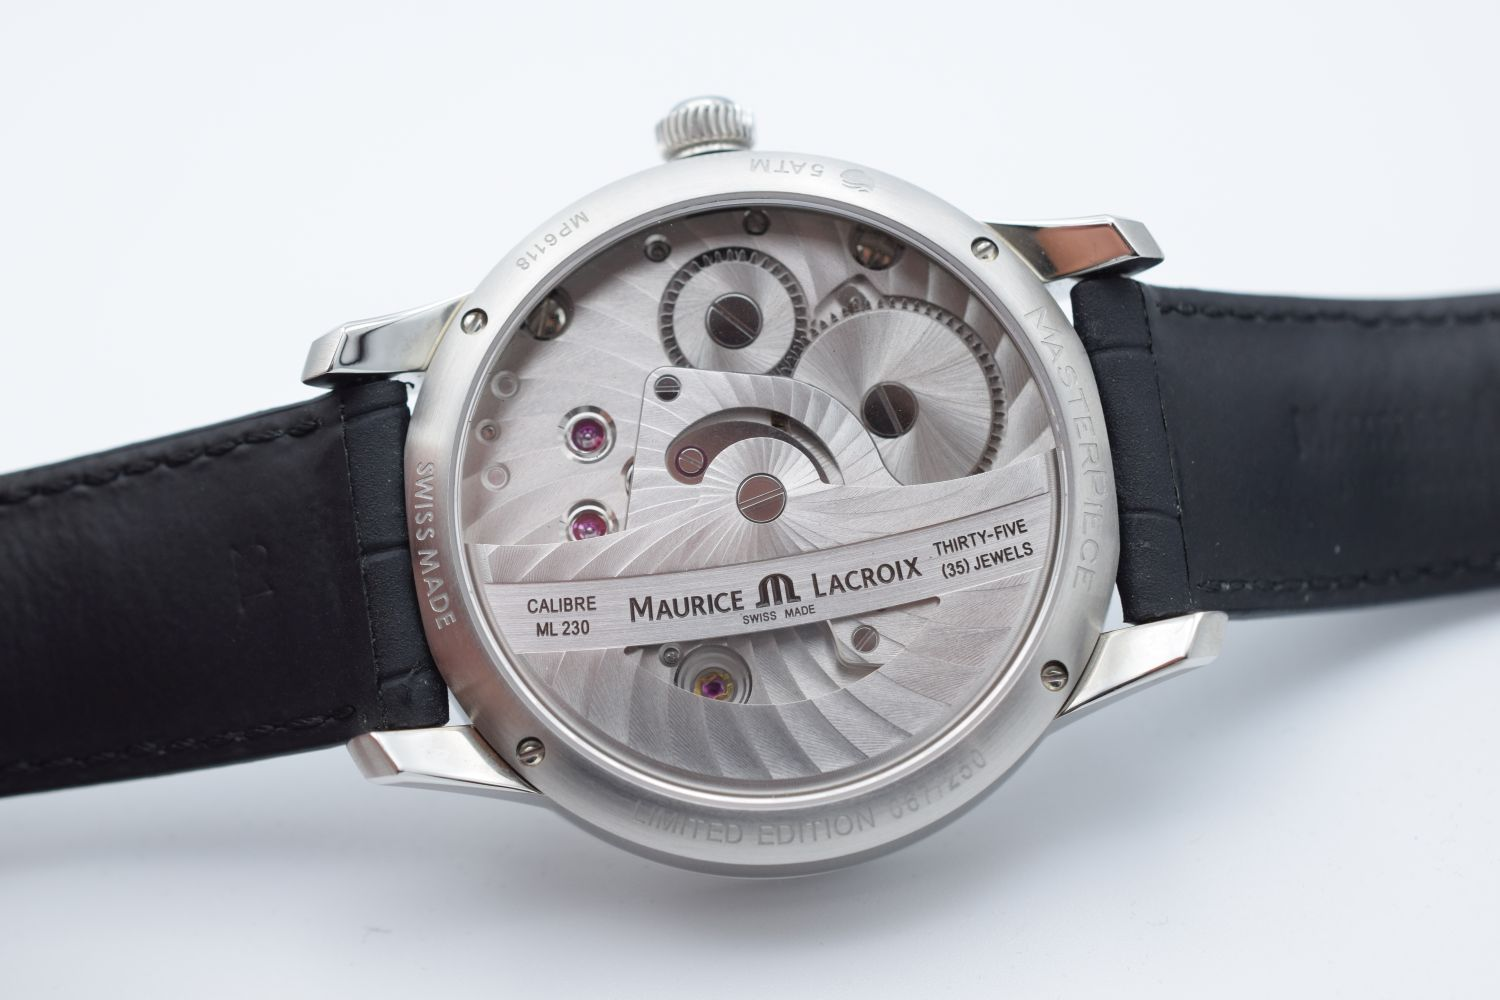 GENTLEMAN'S MAURICE LACROIX MATERPIECE GRAVITY LIMITED EDITION, AUTOMATIC MANUFACTURE ML230, - Image 8 of 8